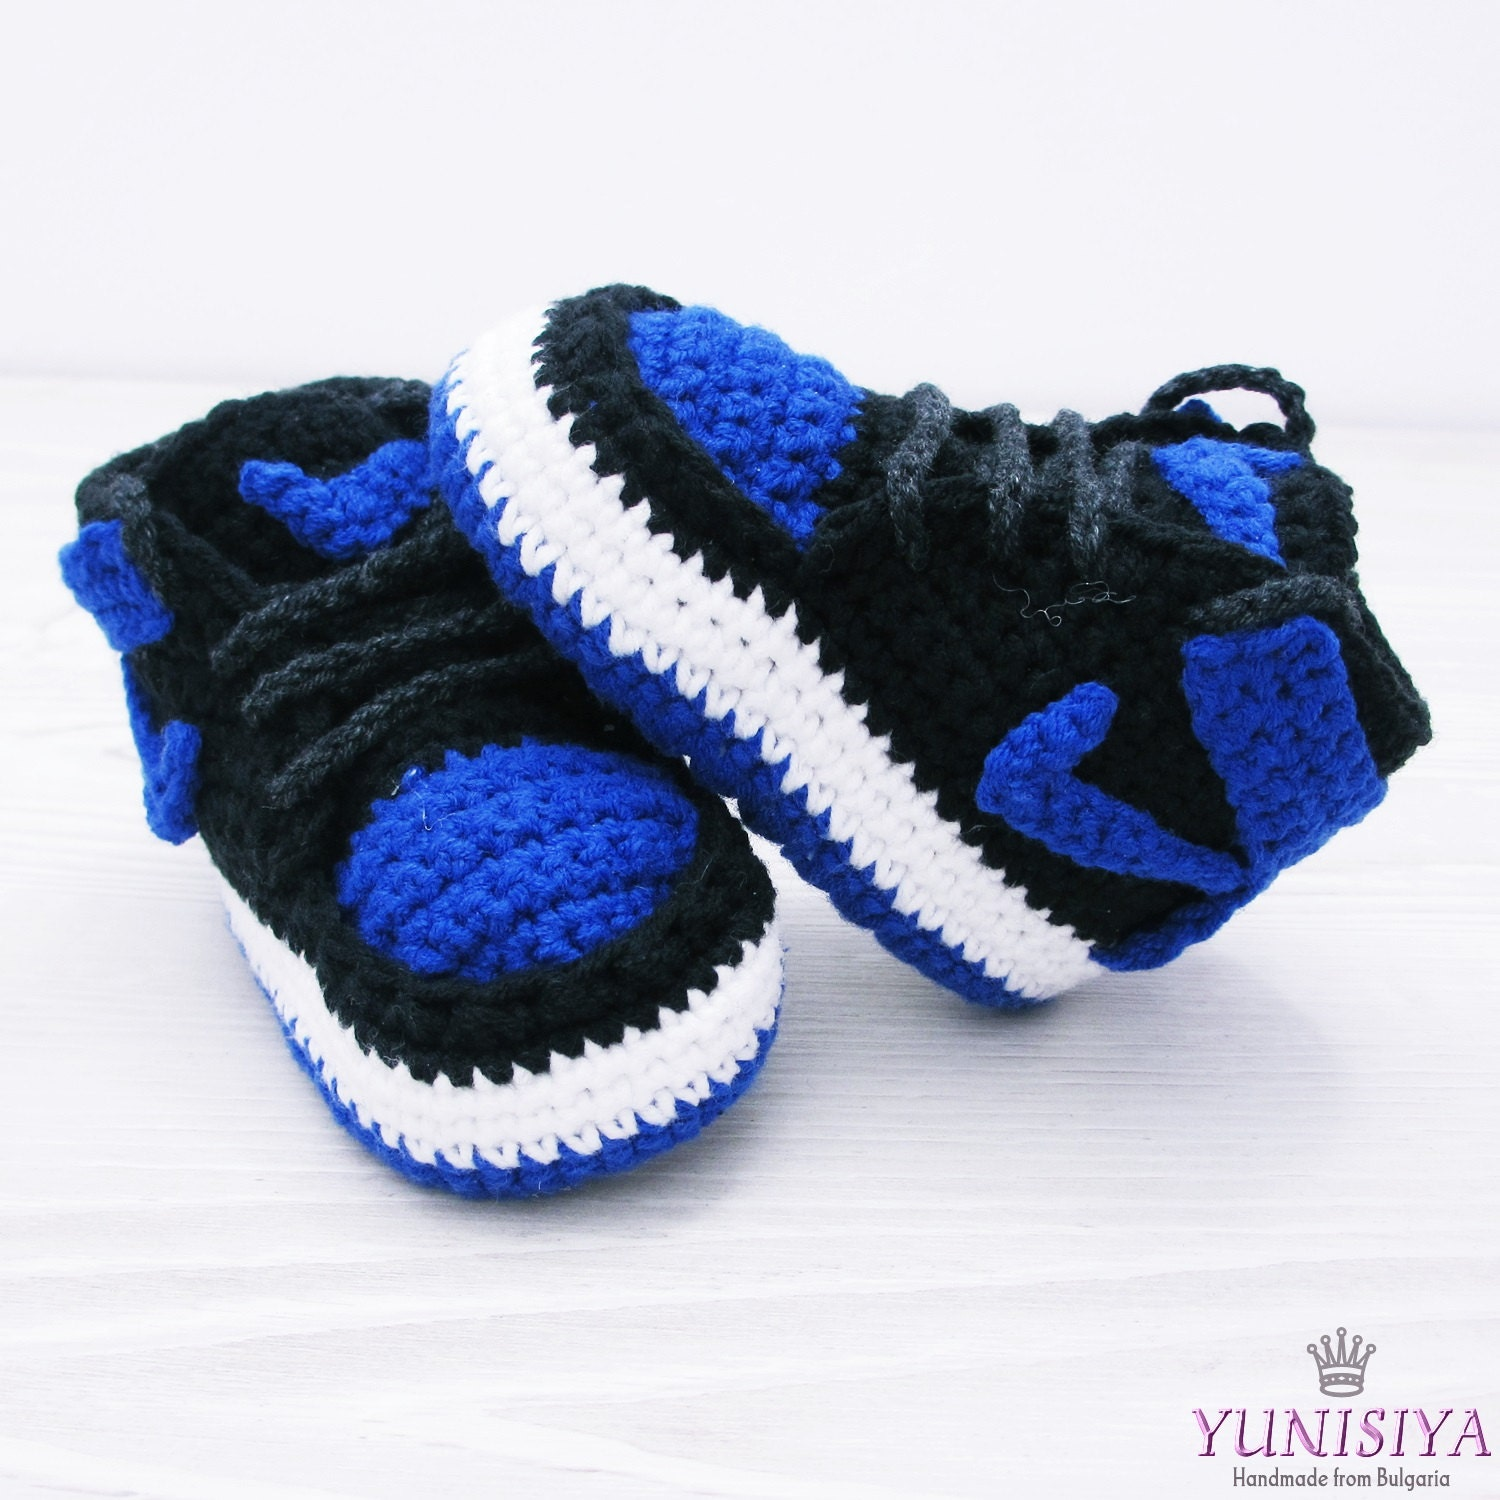 15 of the cutest baby booties' free crochet patterns. (including sandals, slippers, and others as well) These booties are little projects that can be finished quickly and without the need of too much yarn, making them a great option for last minute baby shower presents, you can even finish more than one pair in a day, or add them to something else to create a set or even a basket full of.